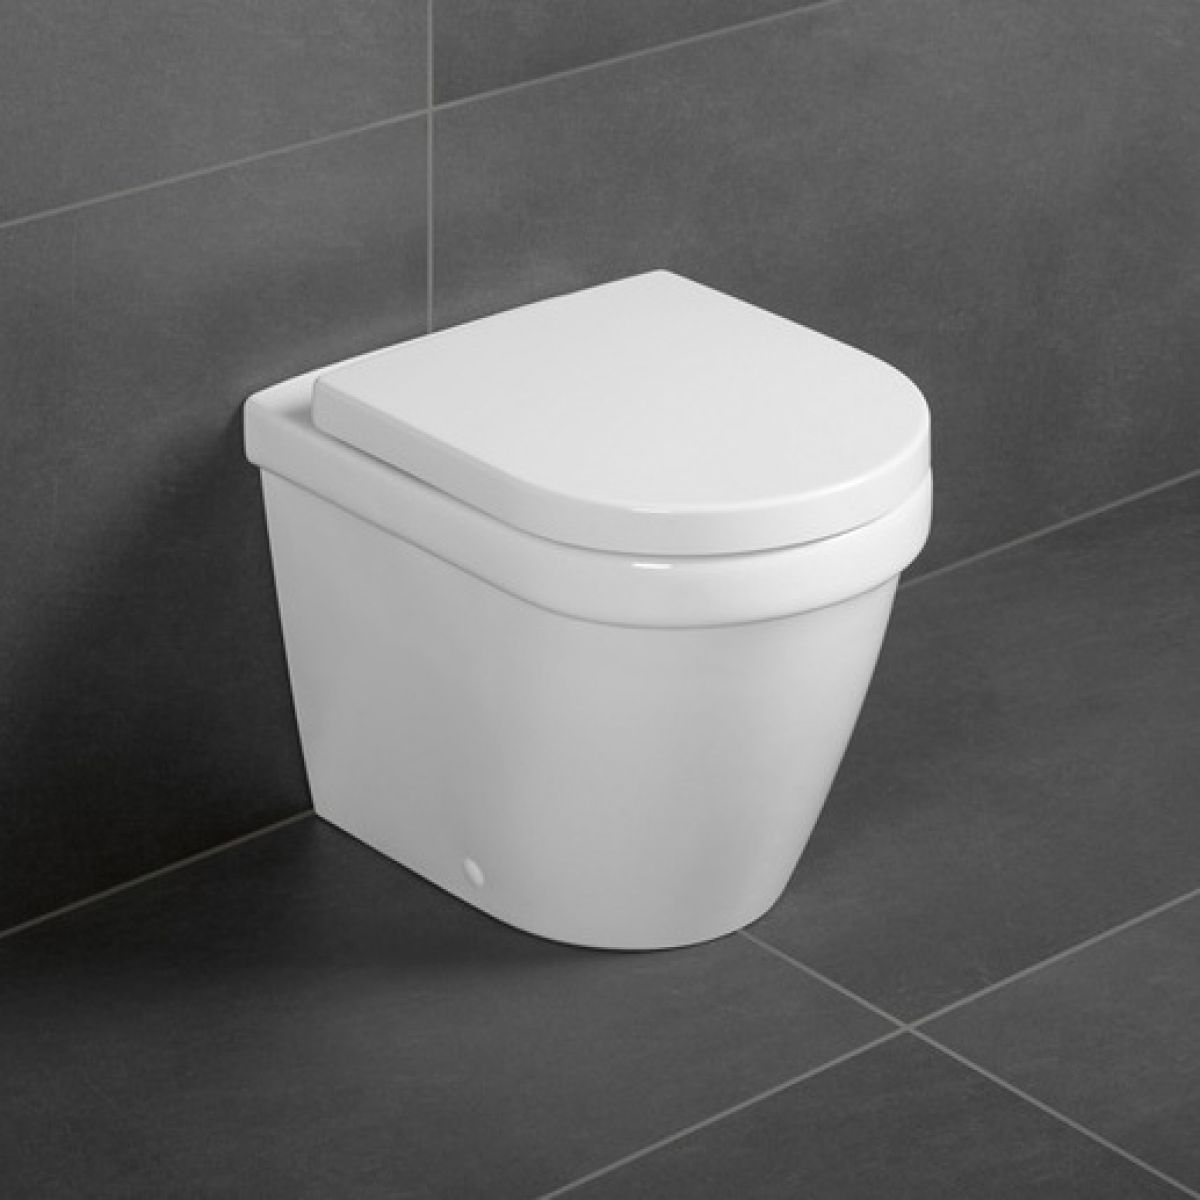 Villeroy & Boch Architectura Rimless Back to Wall Toilet